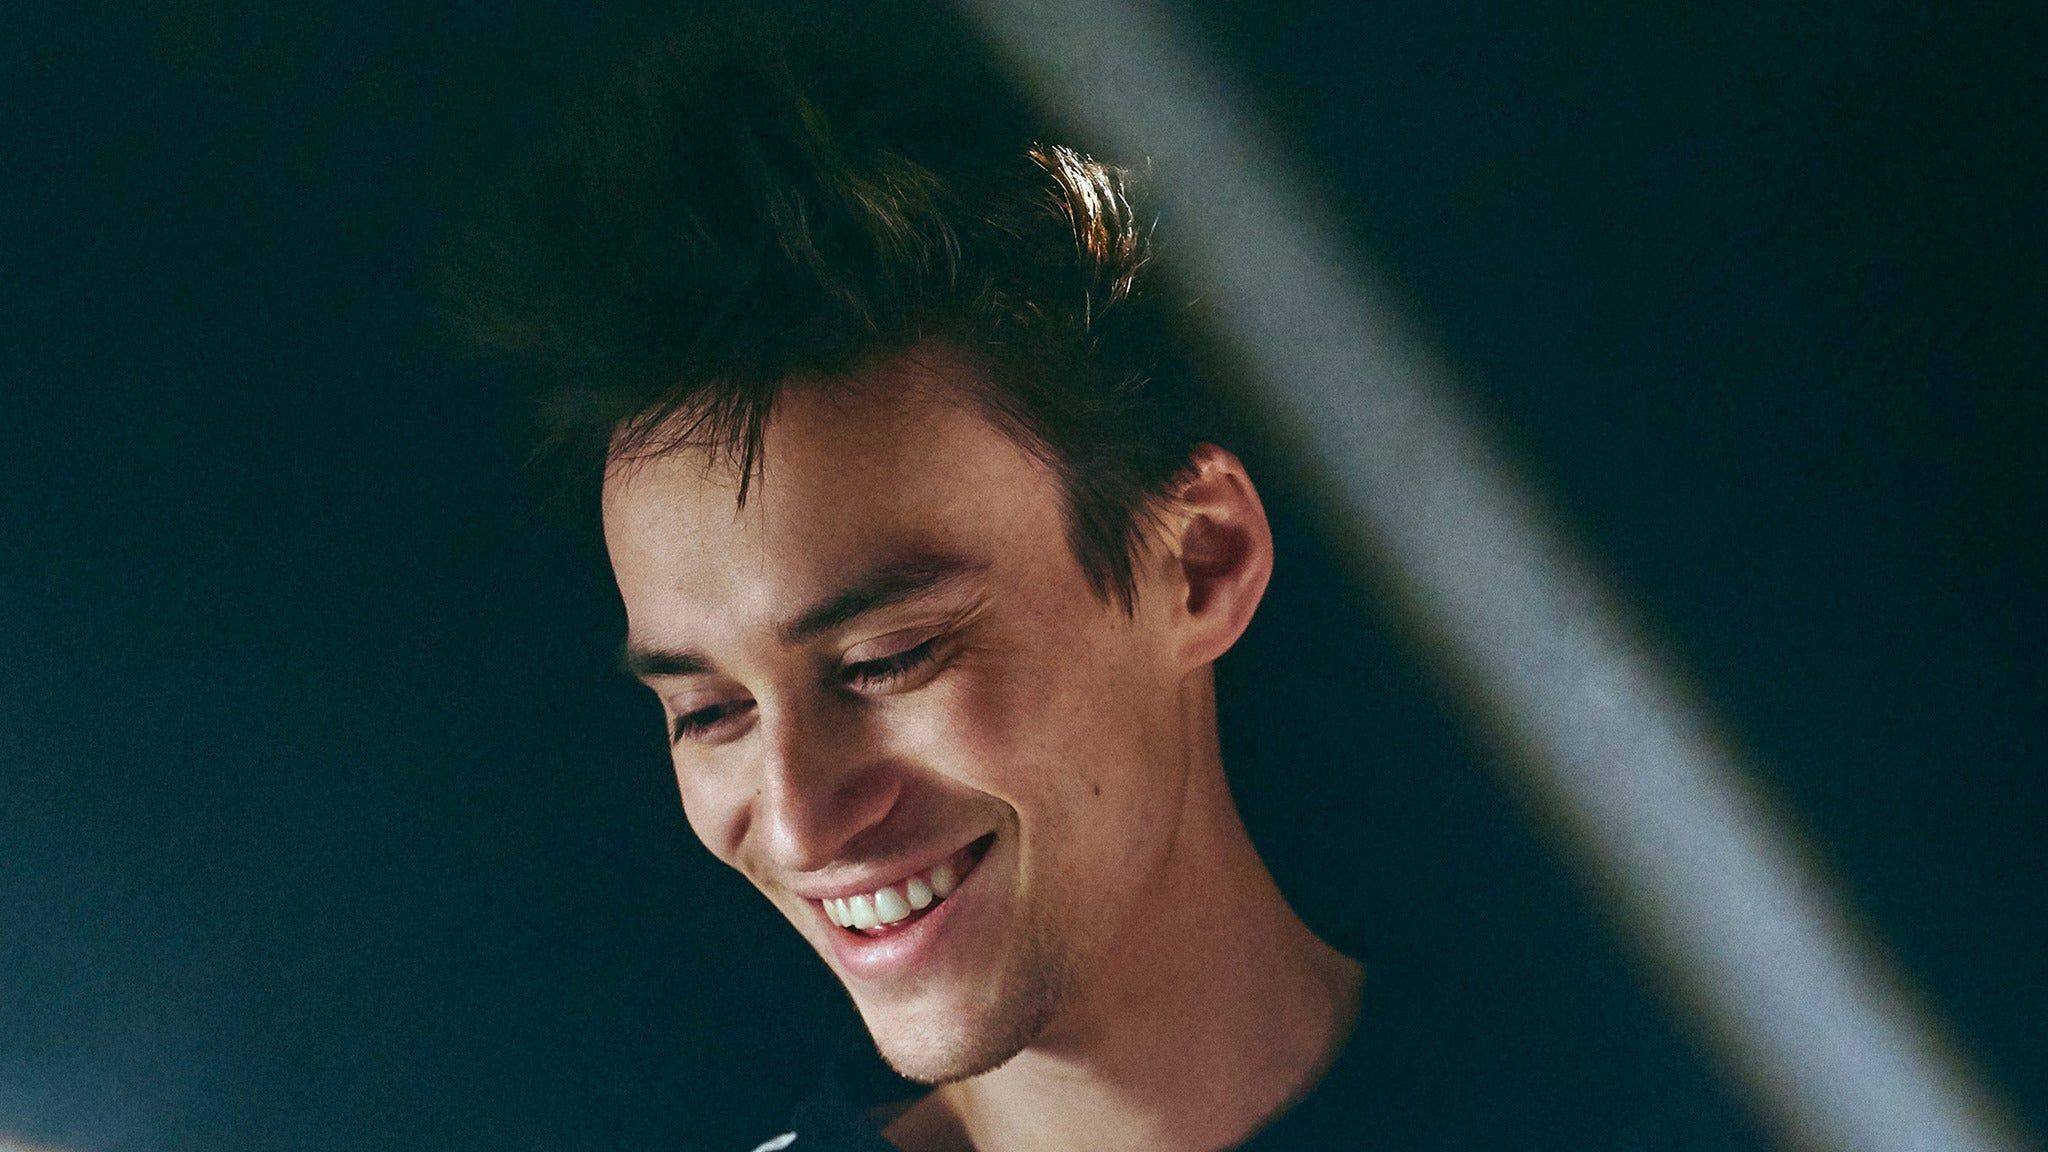 Jacob Collier - VIP package